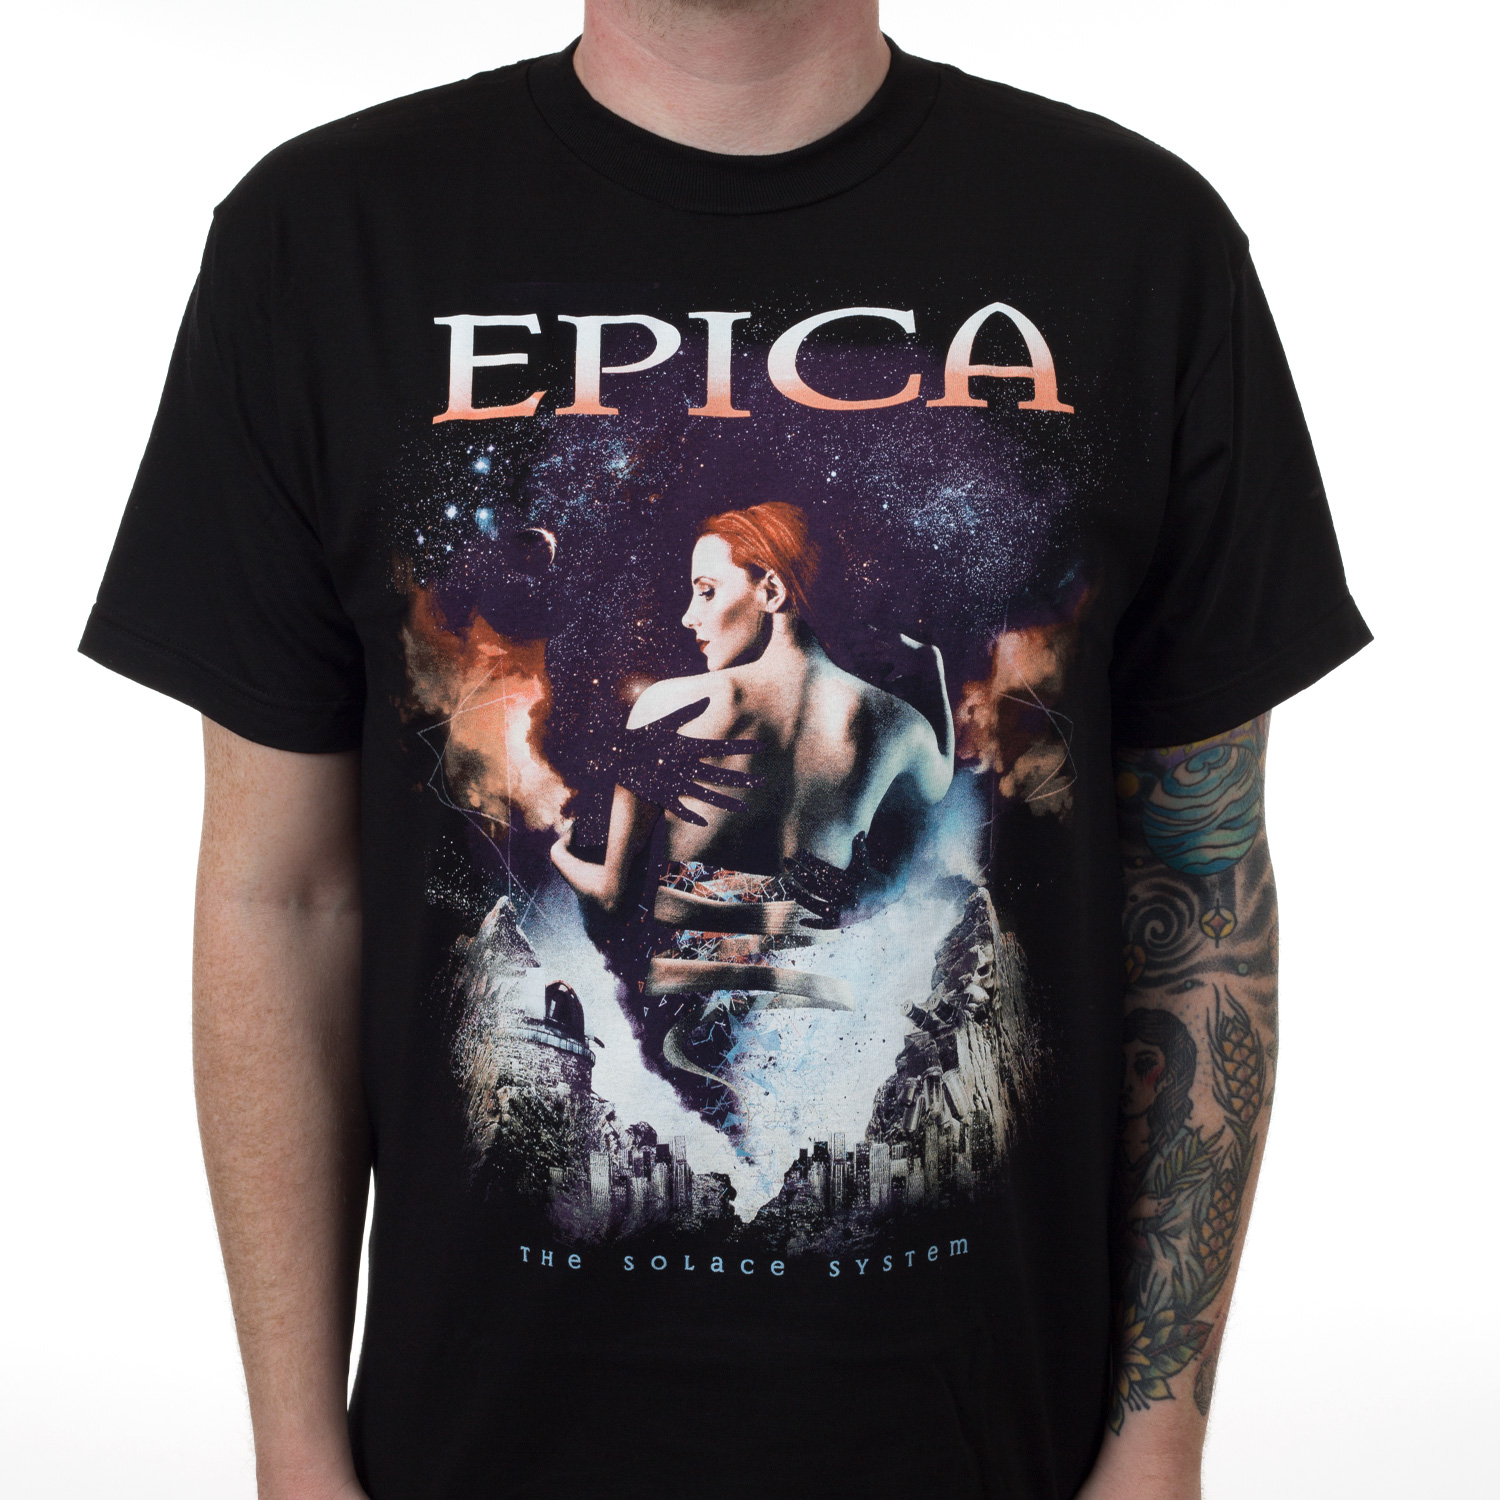 Herrenmode Epica The Holographic Principle T-shirt Musik